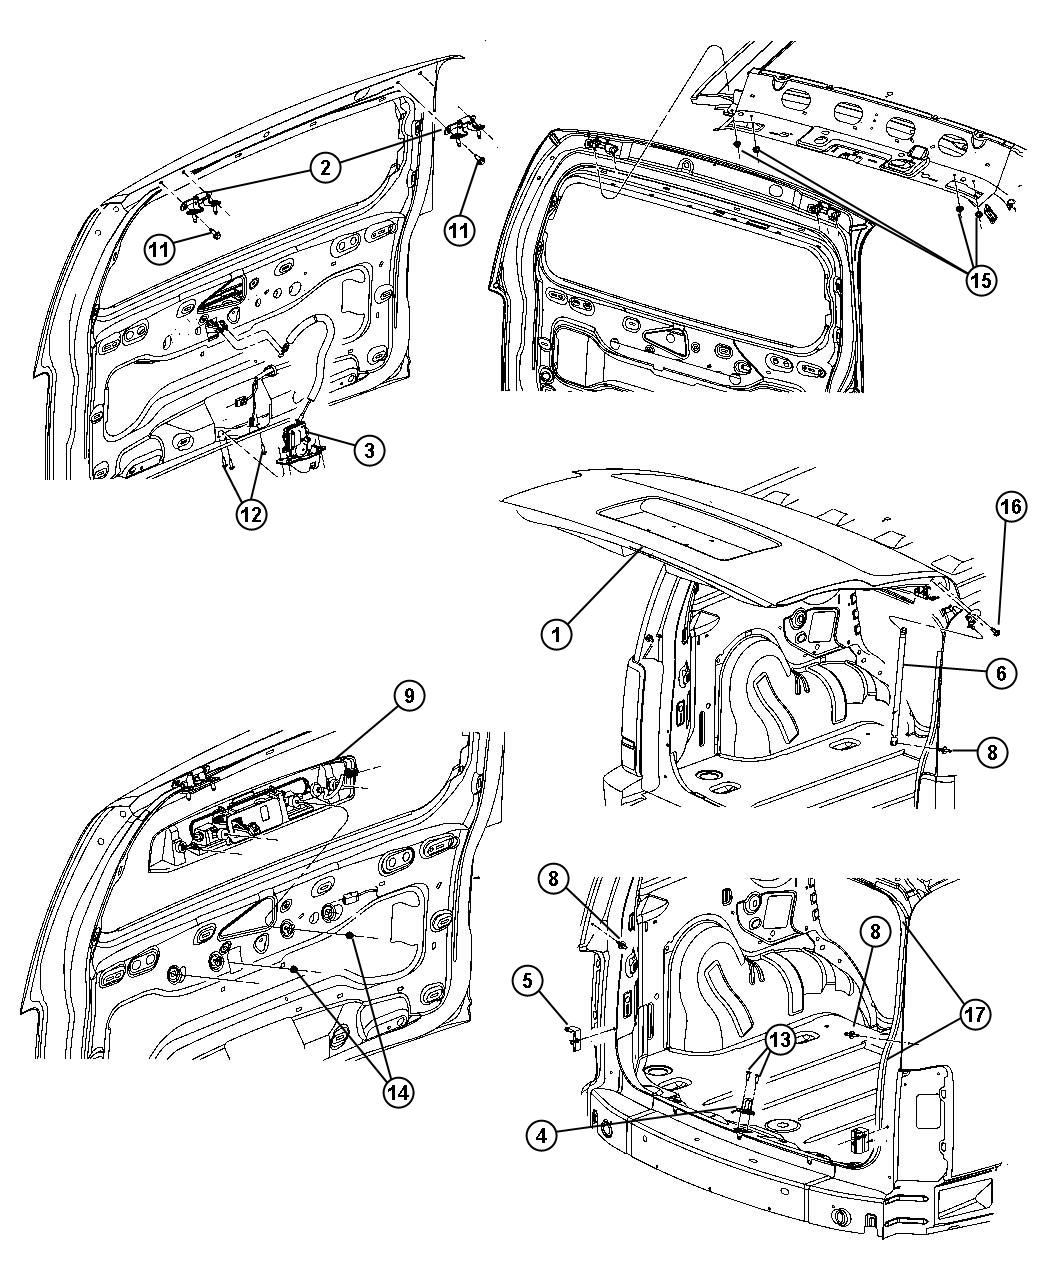 Liftgate Parts Tommy Gate Wiring Diagrams Lift Diagram Maxon